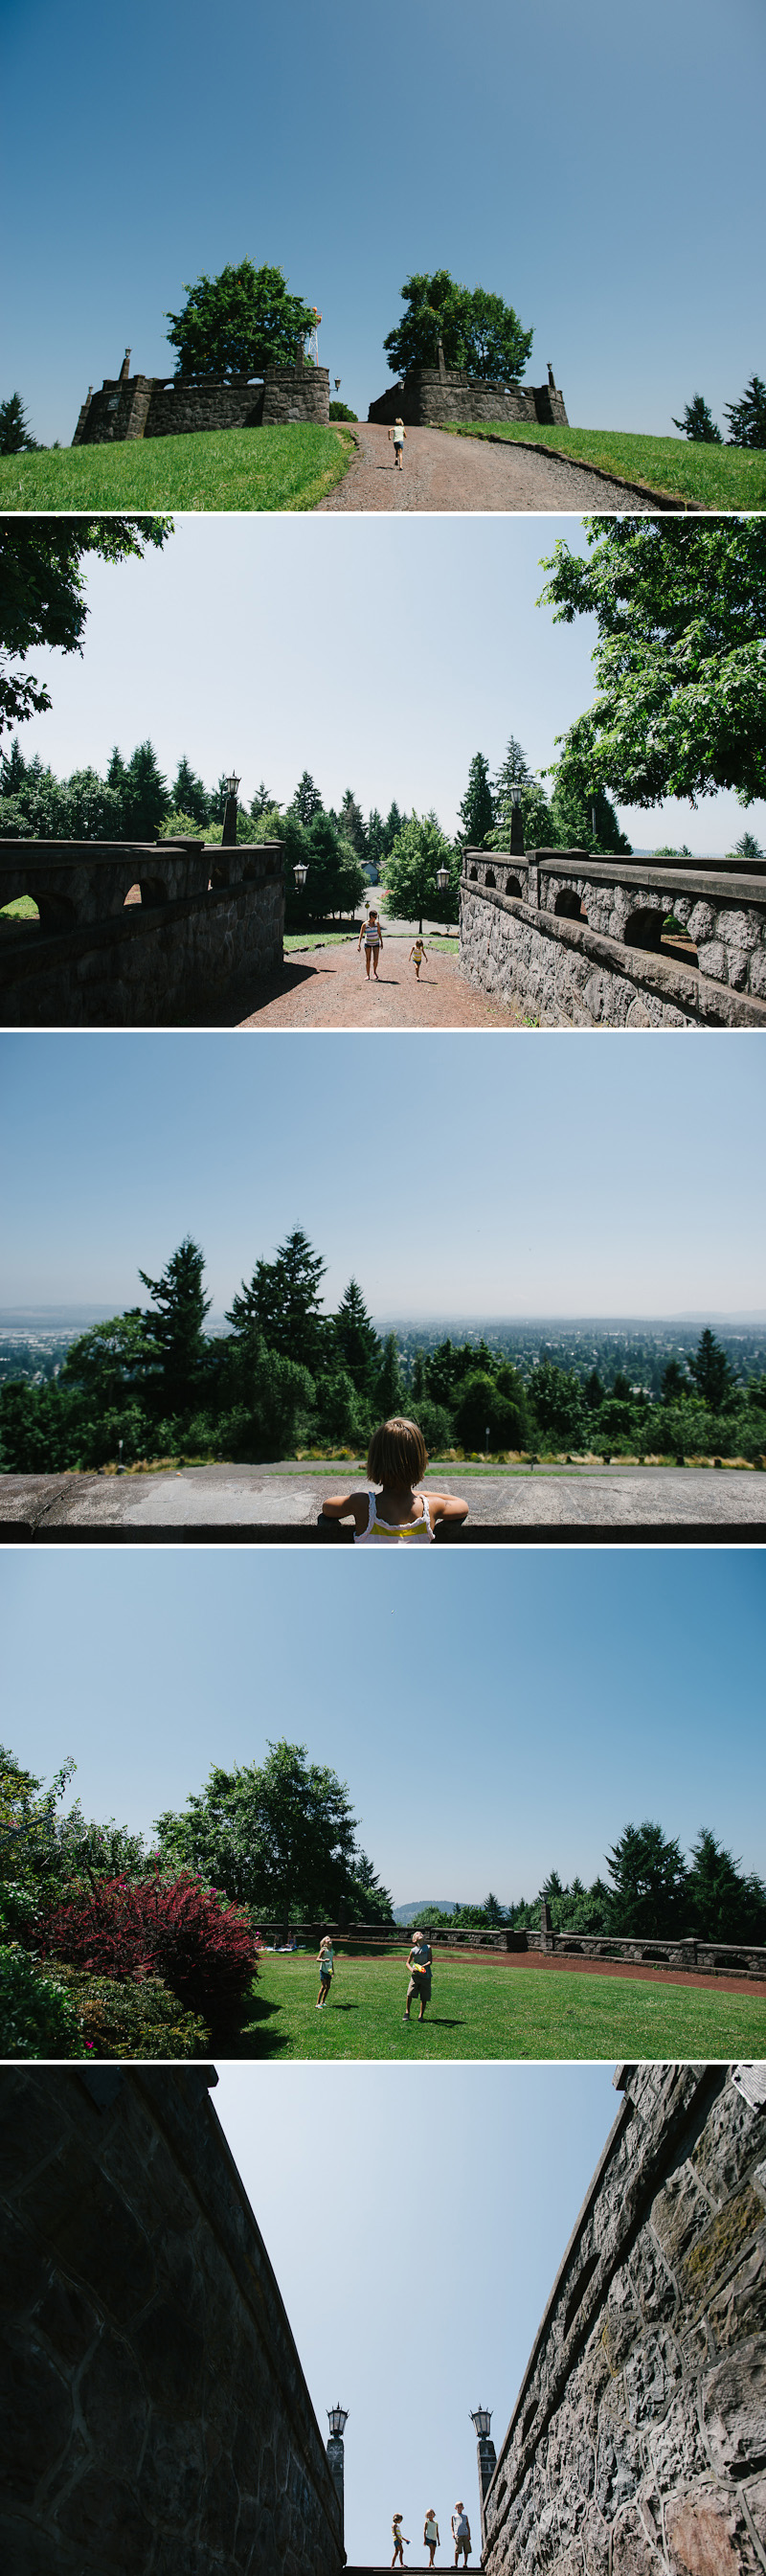 Fun up on Rocky Butte in Portland.